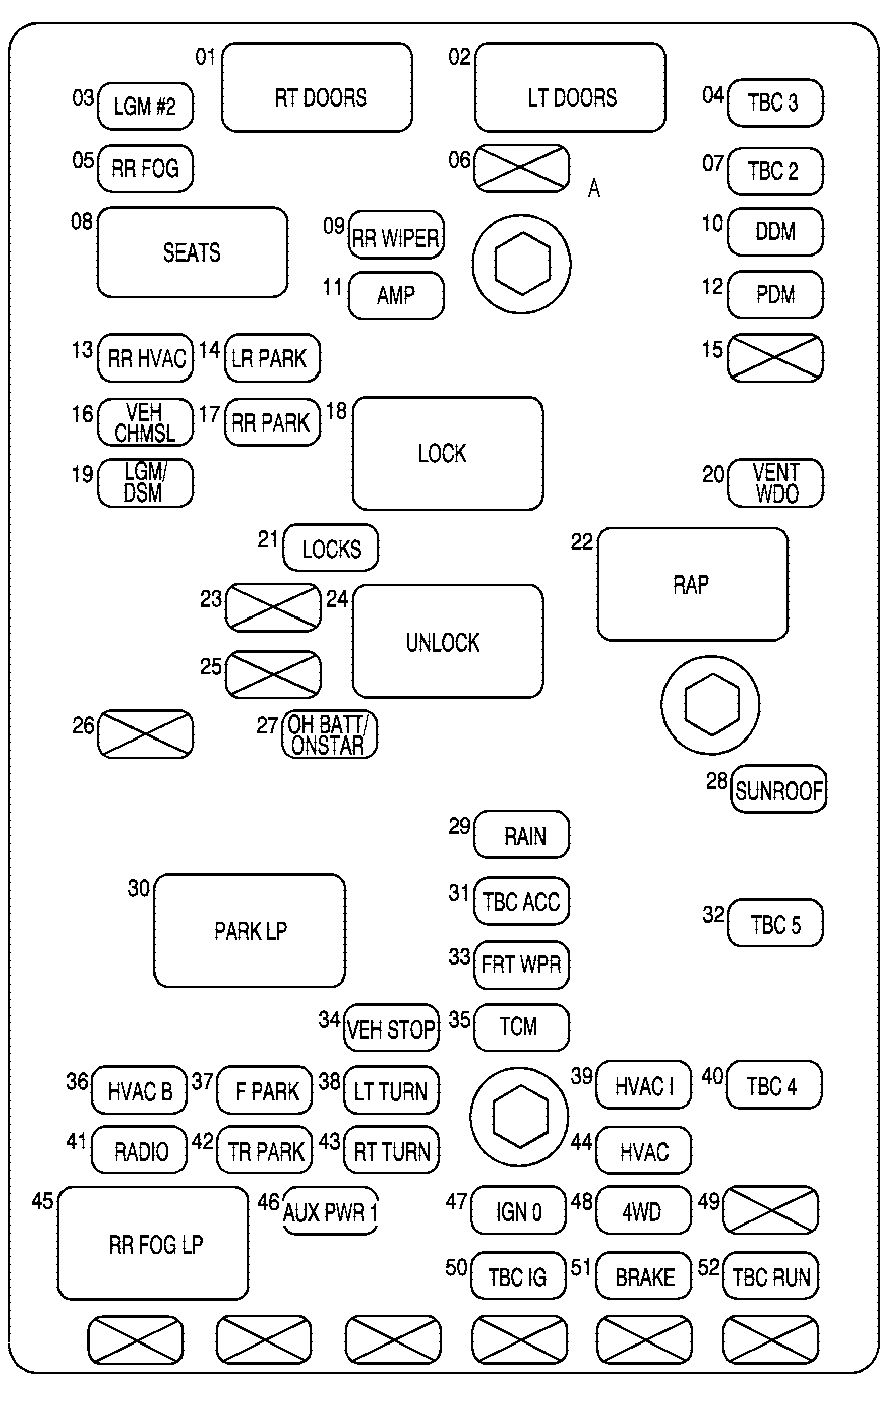 2006 Envoy Fuse Box Wiring Diagram Online 2002 Chevy Trailblazer Gmc The Portal And Forum Of